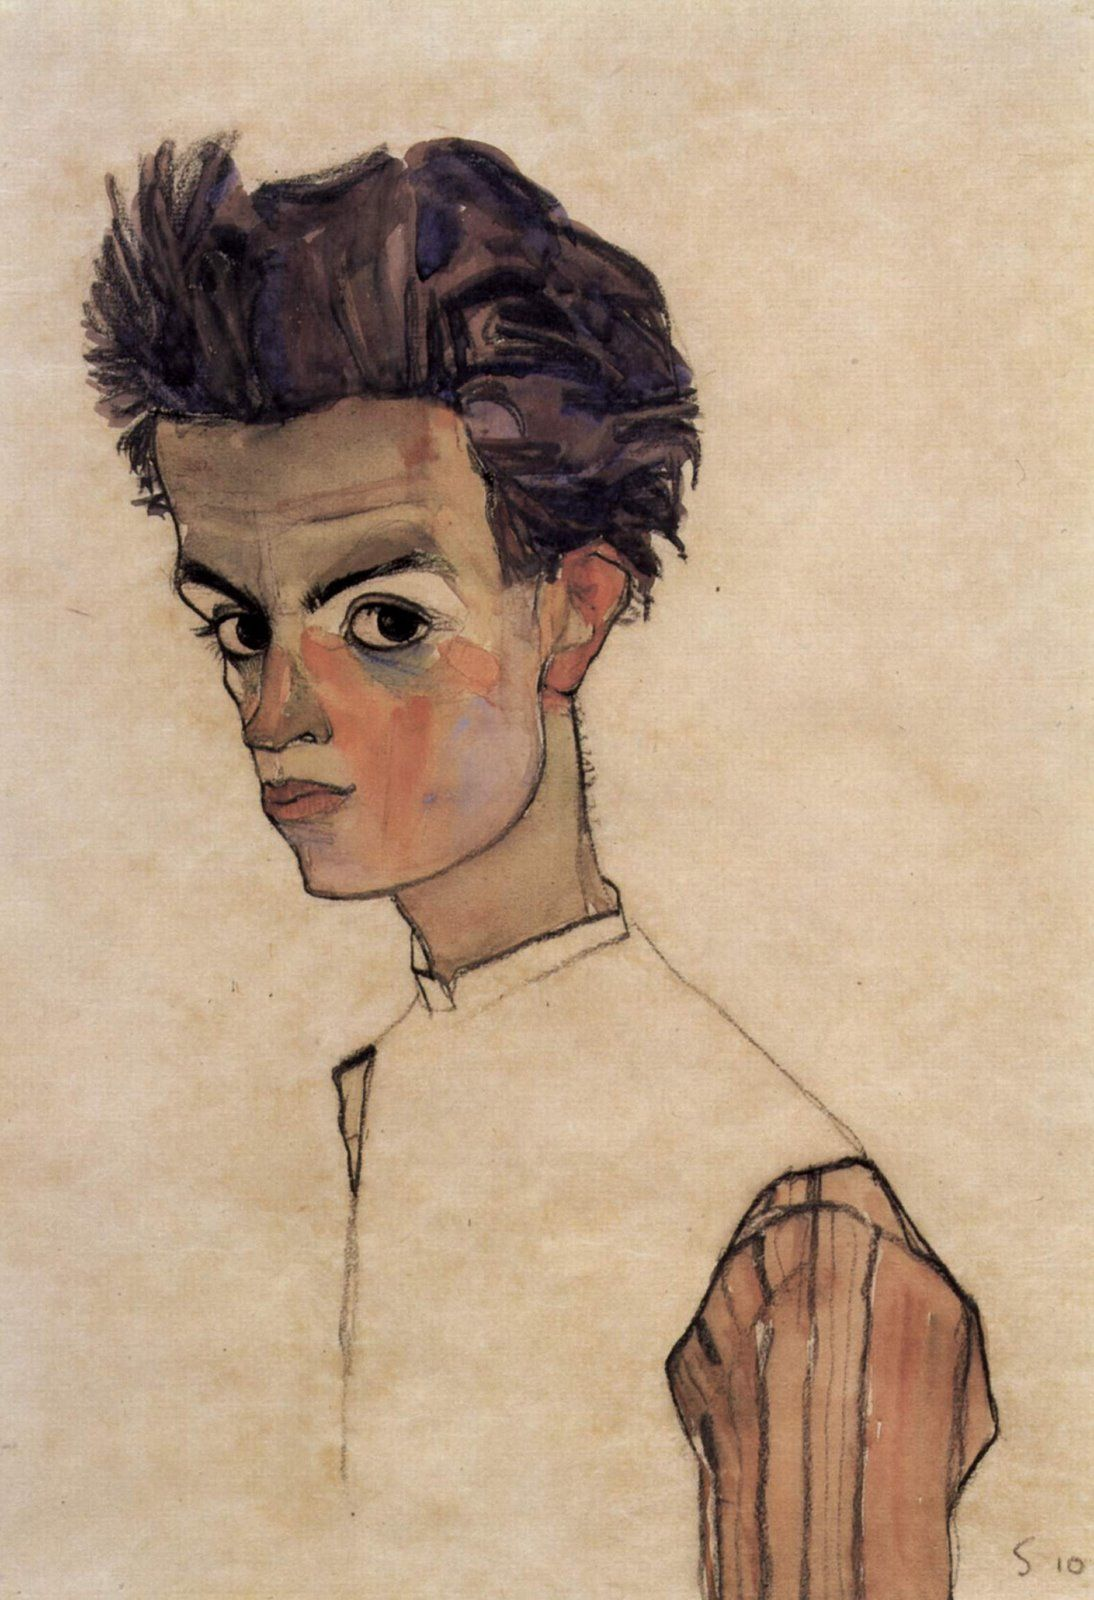 Self-Portrait+by+Egon+Schiele.jpg 1,094×1,600 pixels